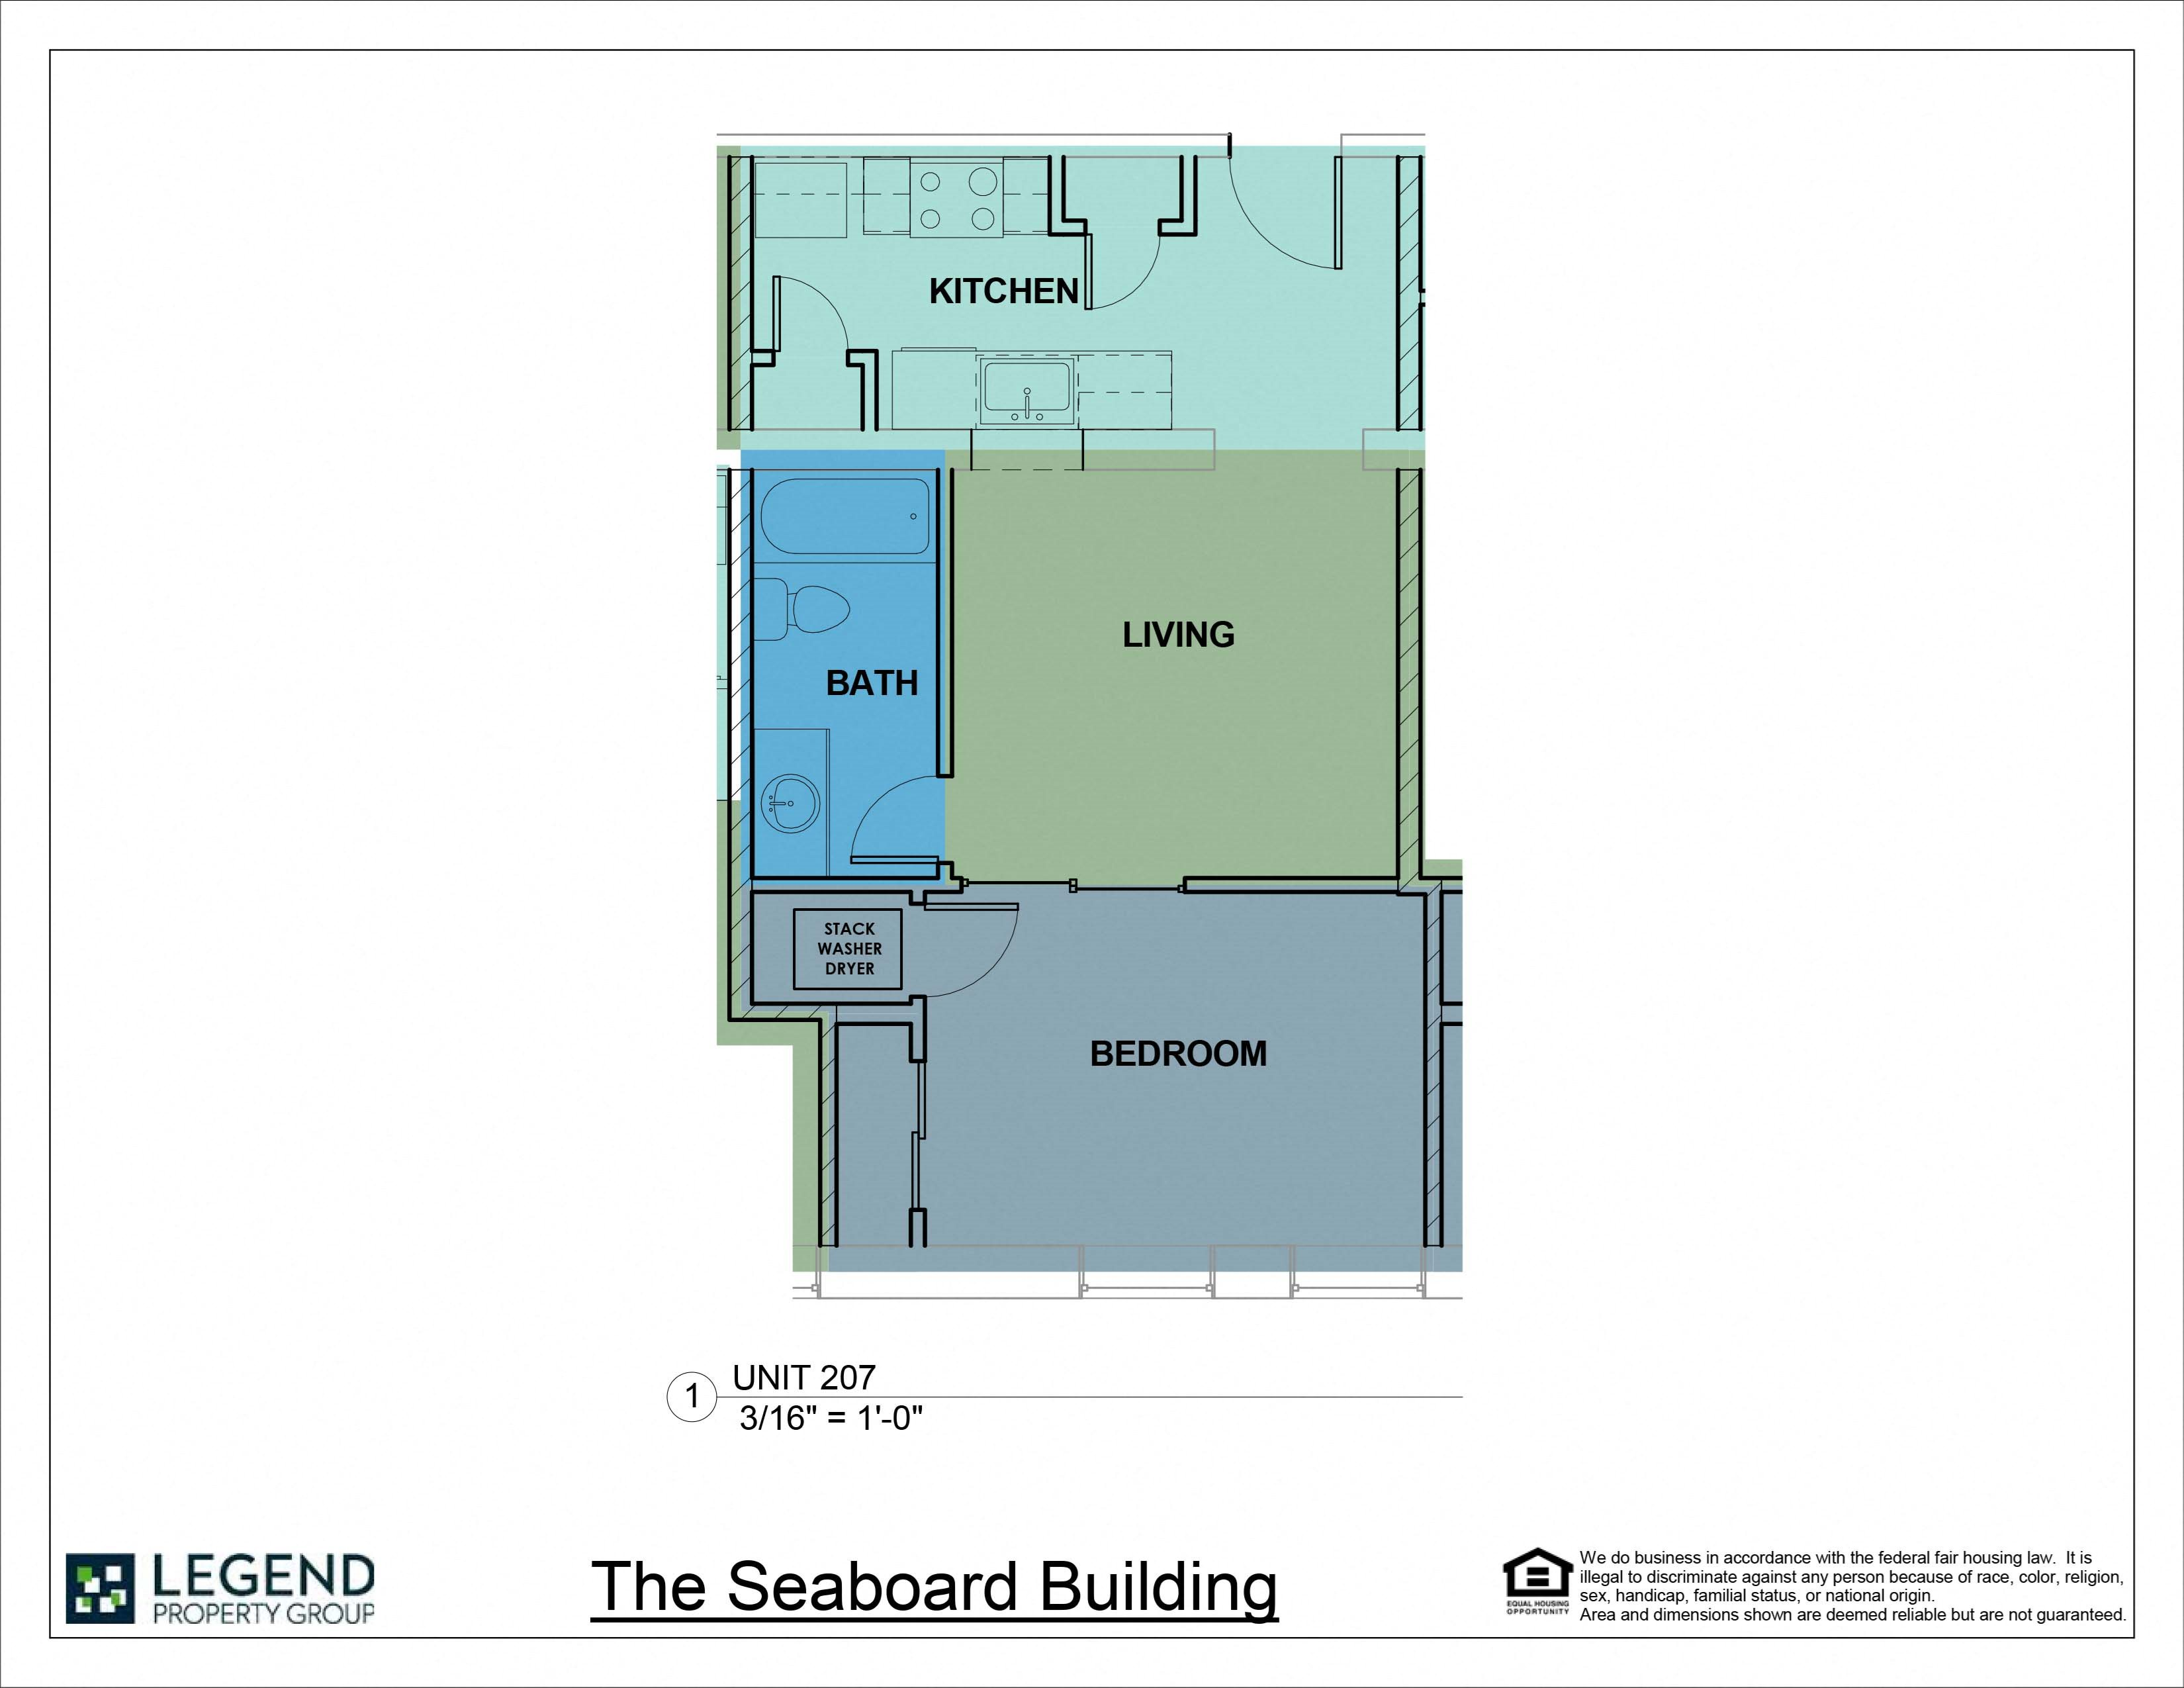 floor plans of the seaboard building in portsmouth va